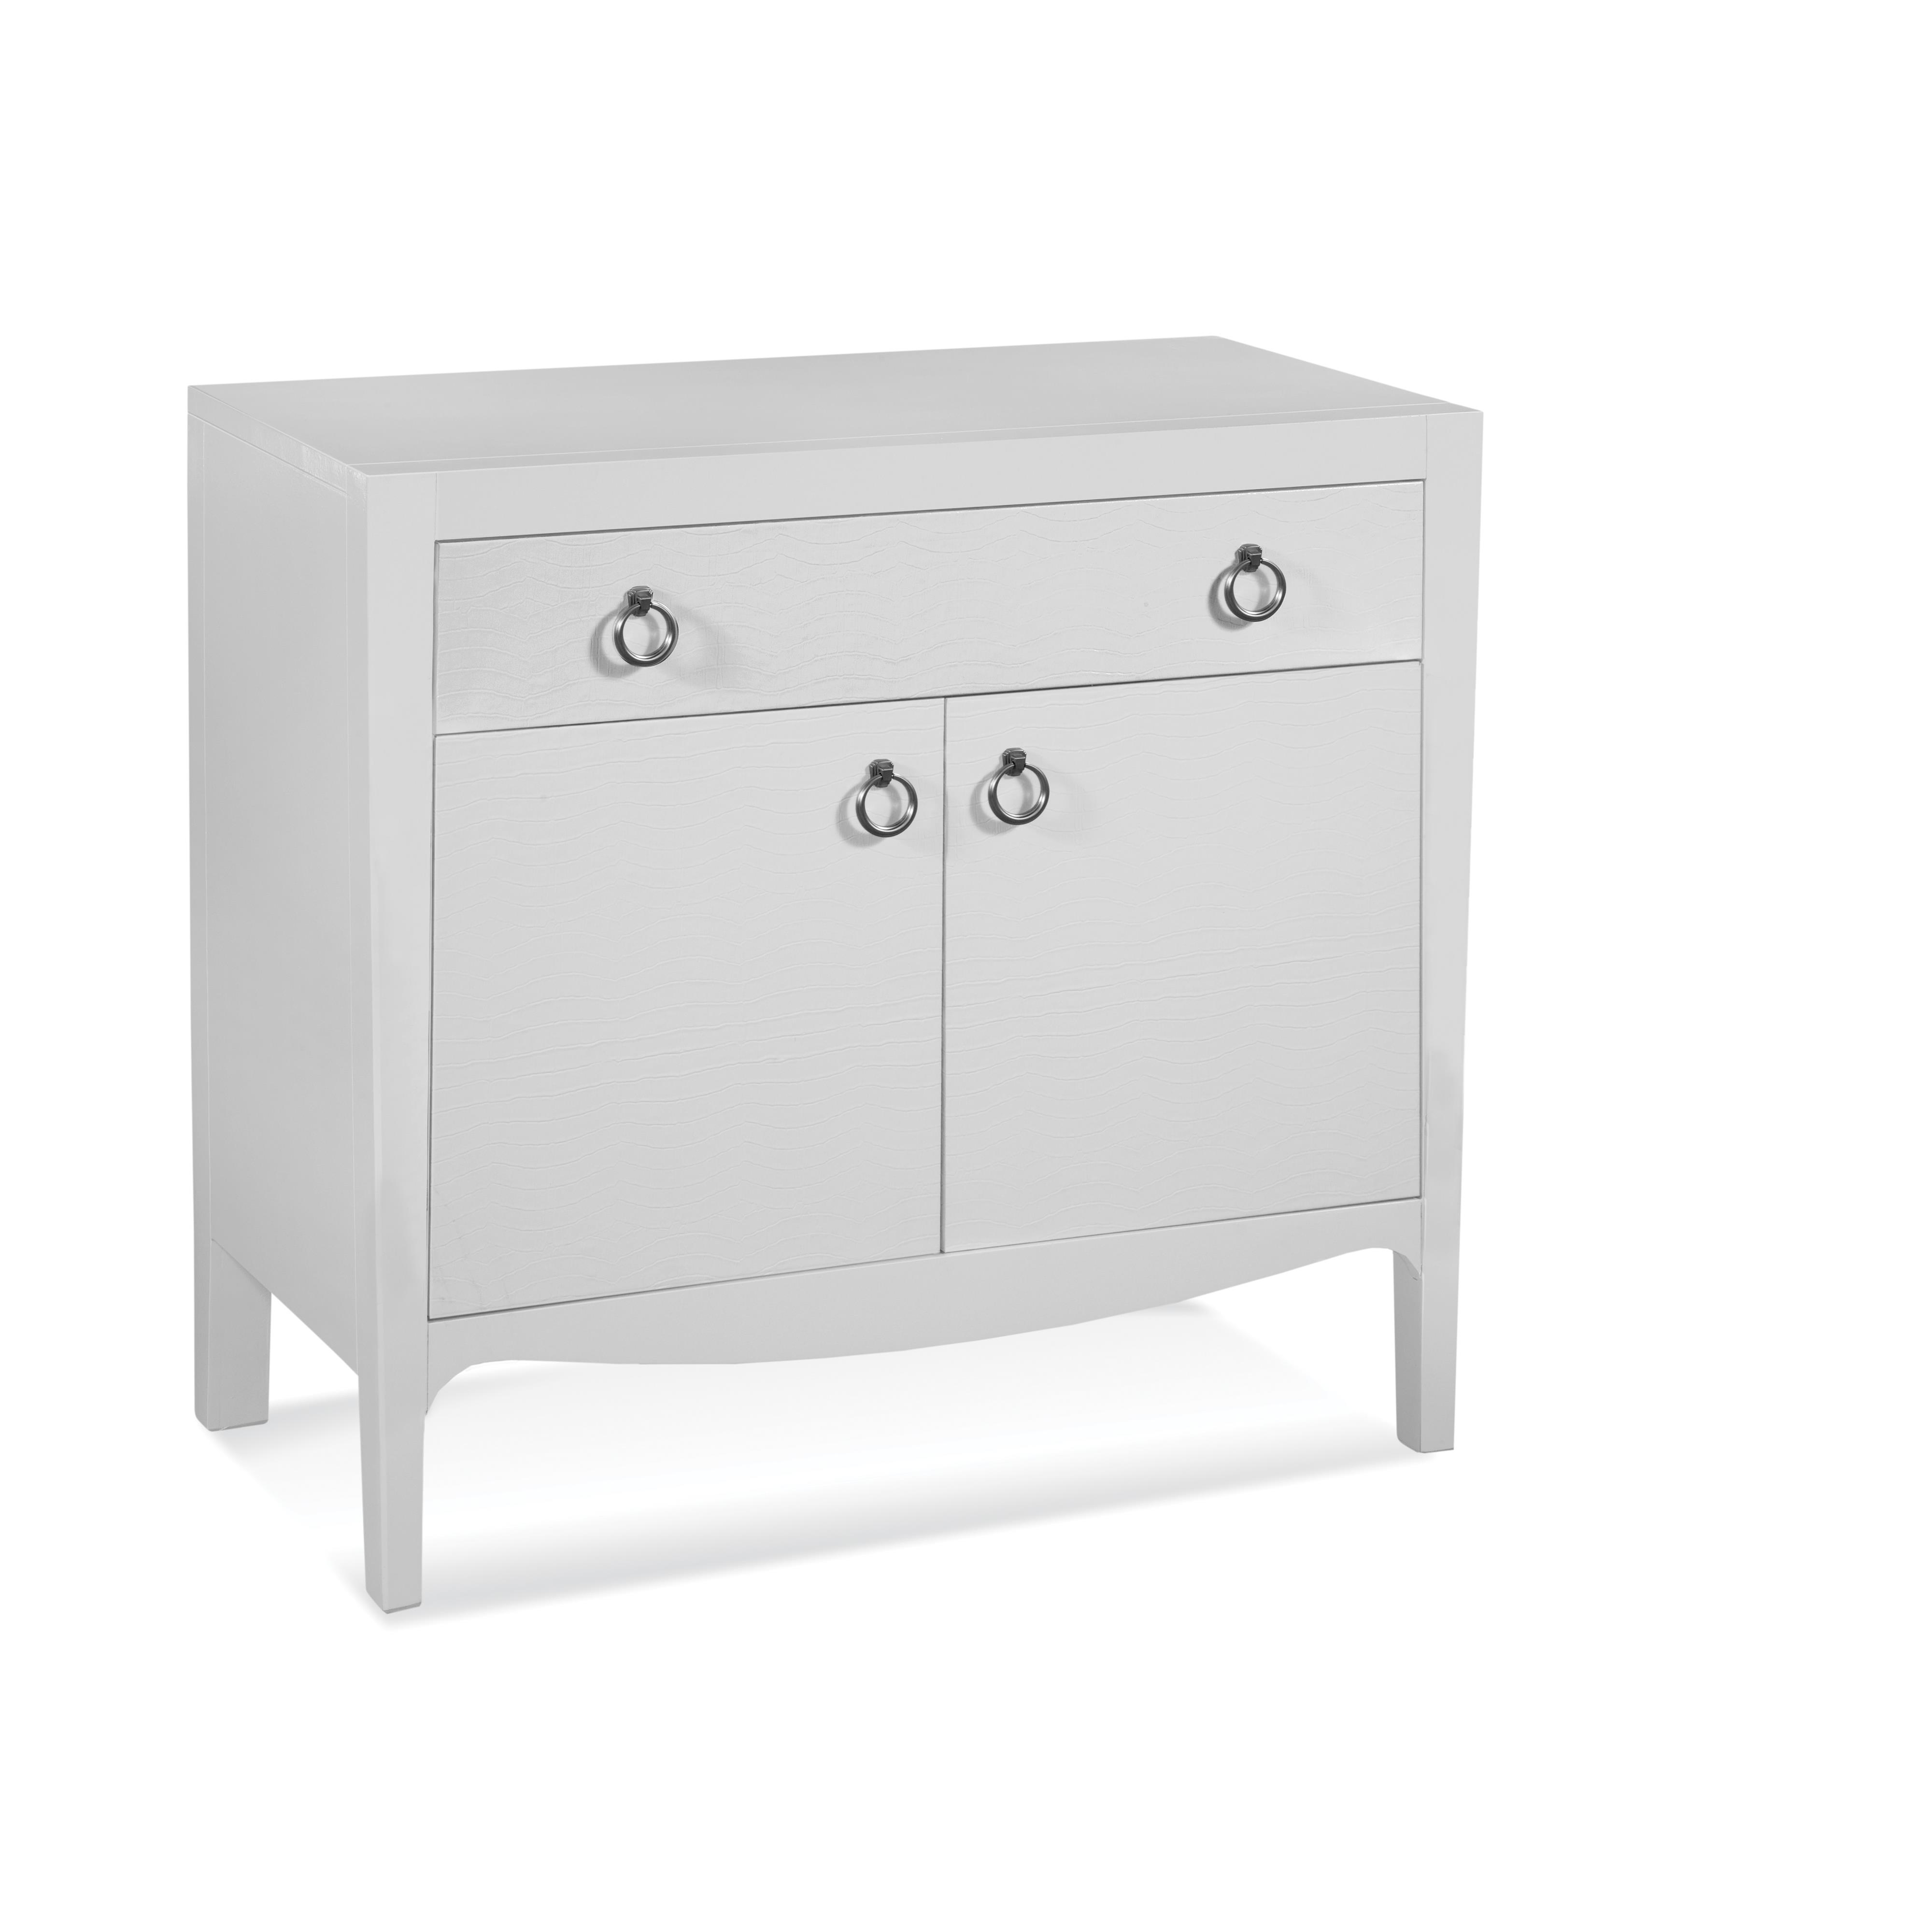 In-Town Kristin Hospitality Cabinet by Bassett Mirror at Lapeer Furniture & Mattress Center